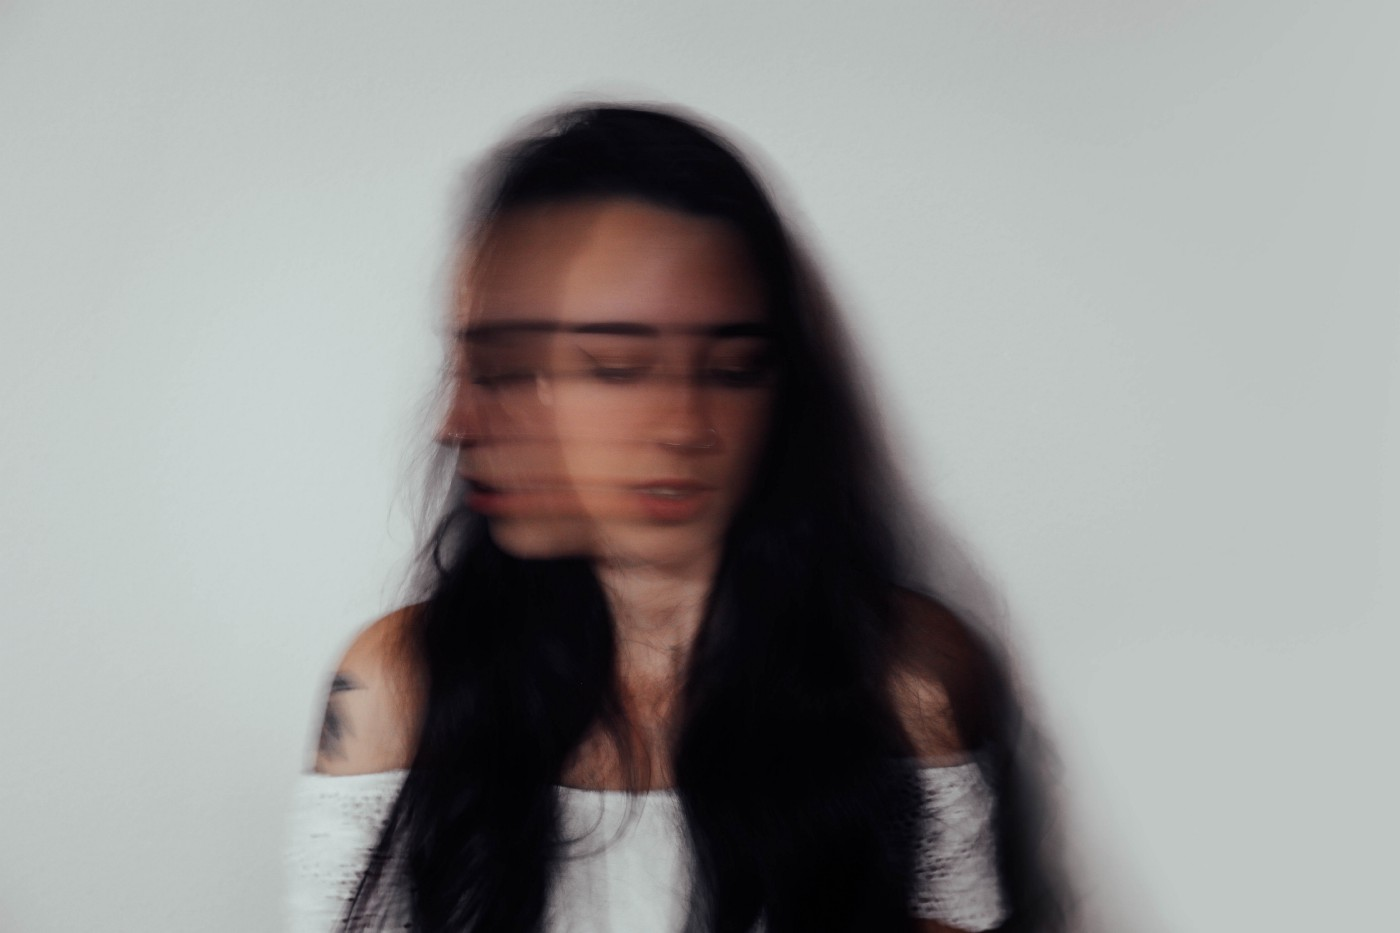 This blurry image shows a woman turning her head, in which you can see different angles of her face at once.